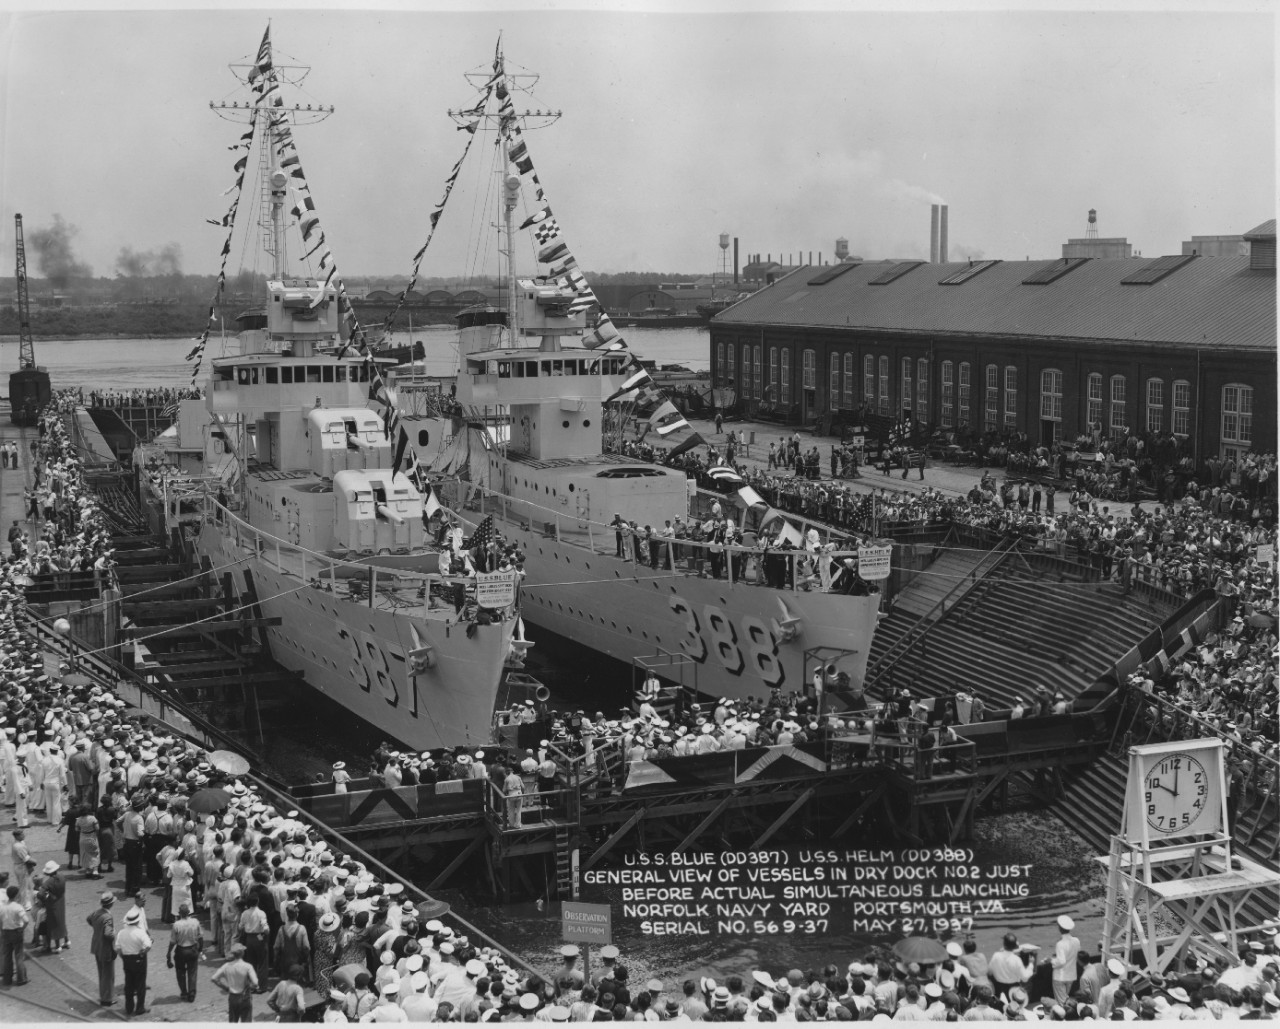 Blue (DD-387) (L) and Helm await christening in the partially flooded Dry Dock No. 2 at the Norfolk Navy Yard, 27 May 1937. Blue appears to have her guns and torpedo tubes installed, and both ships' Mk. 33 main battery gun directors are in place. (U.S. Navy Bureau of Ships Photograph 19-N-18066, National Archives and Records Administration, Still Pictures Division, College Park, Md.)